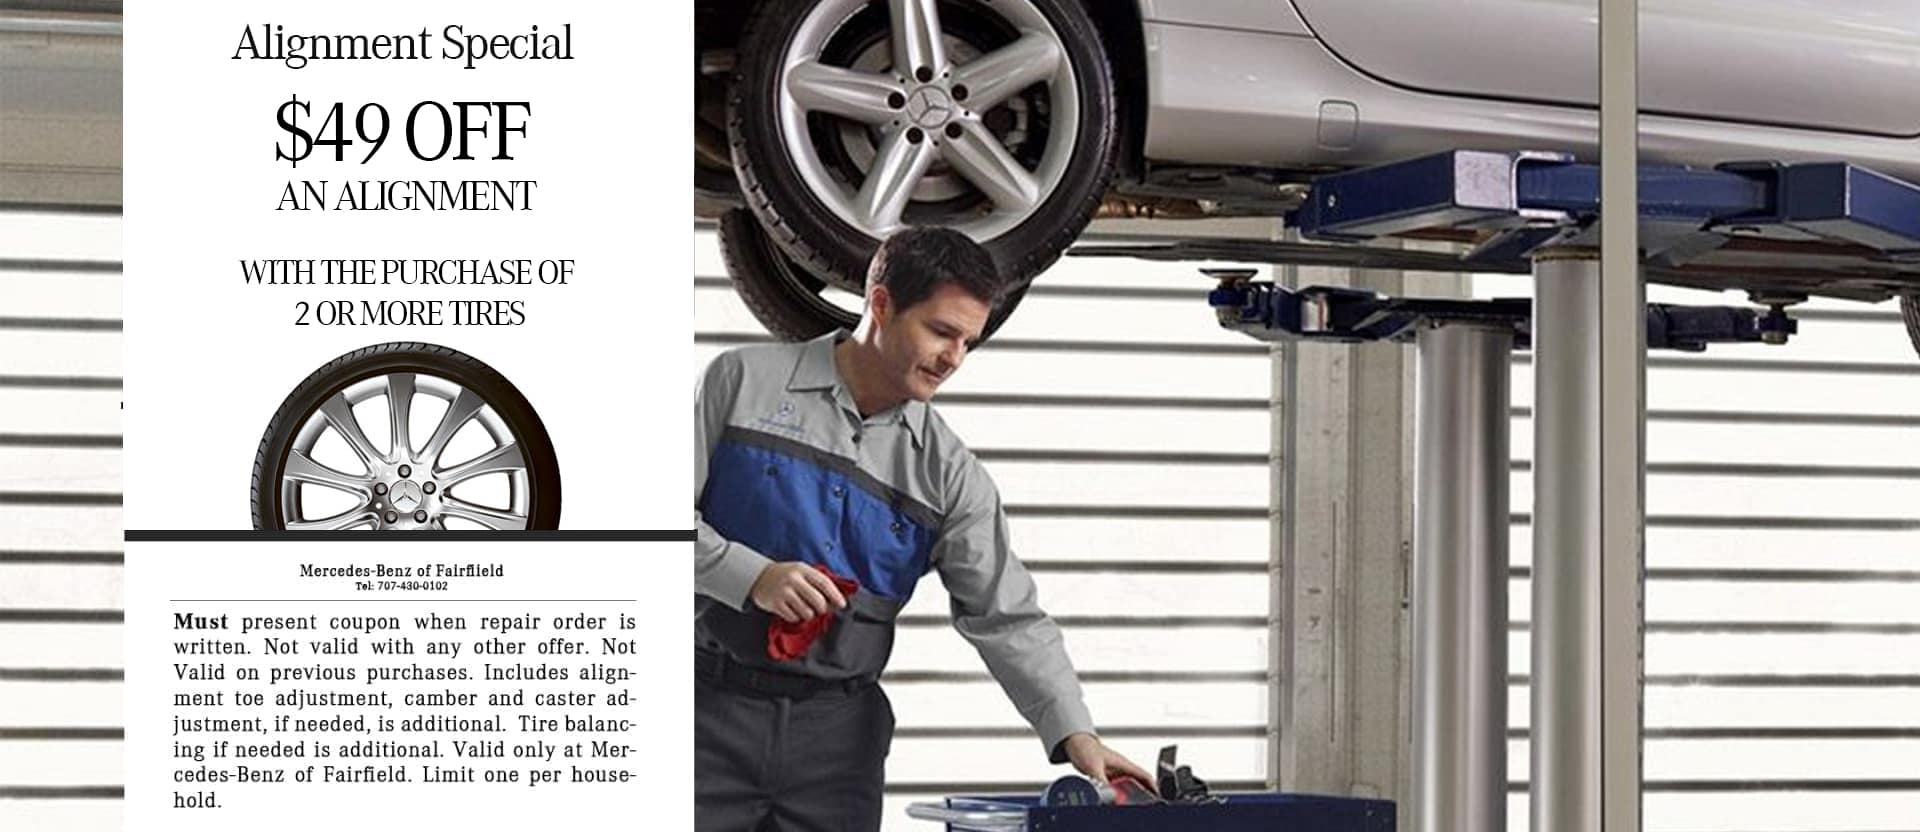 Oil Change Coupons & Auto Service Coupons   Mercedes-Benz of